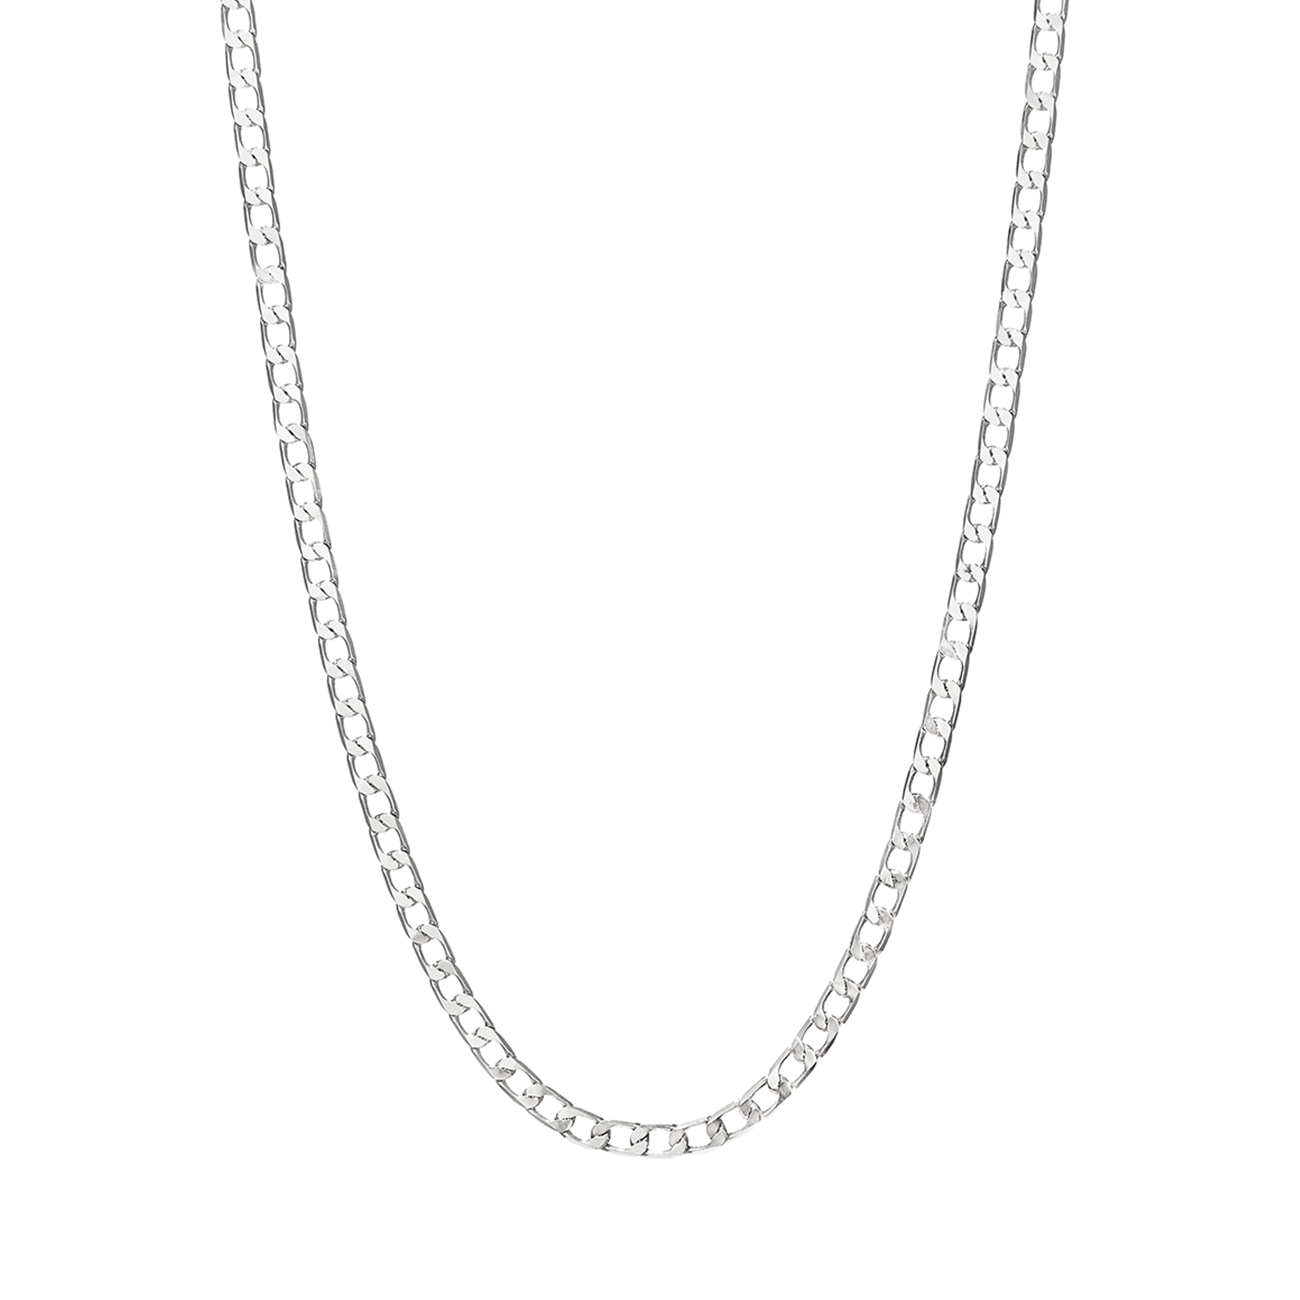 Silver The Walter flat curb chain necklace by JENNY BIRD